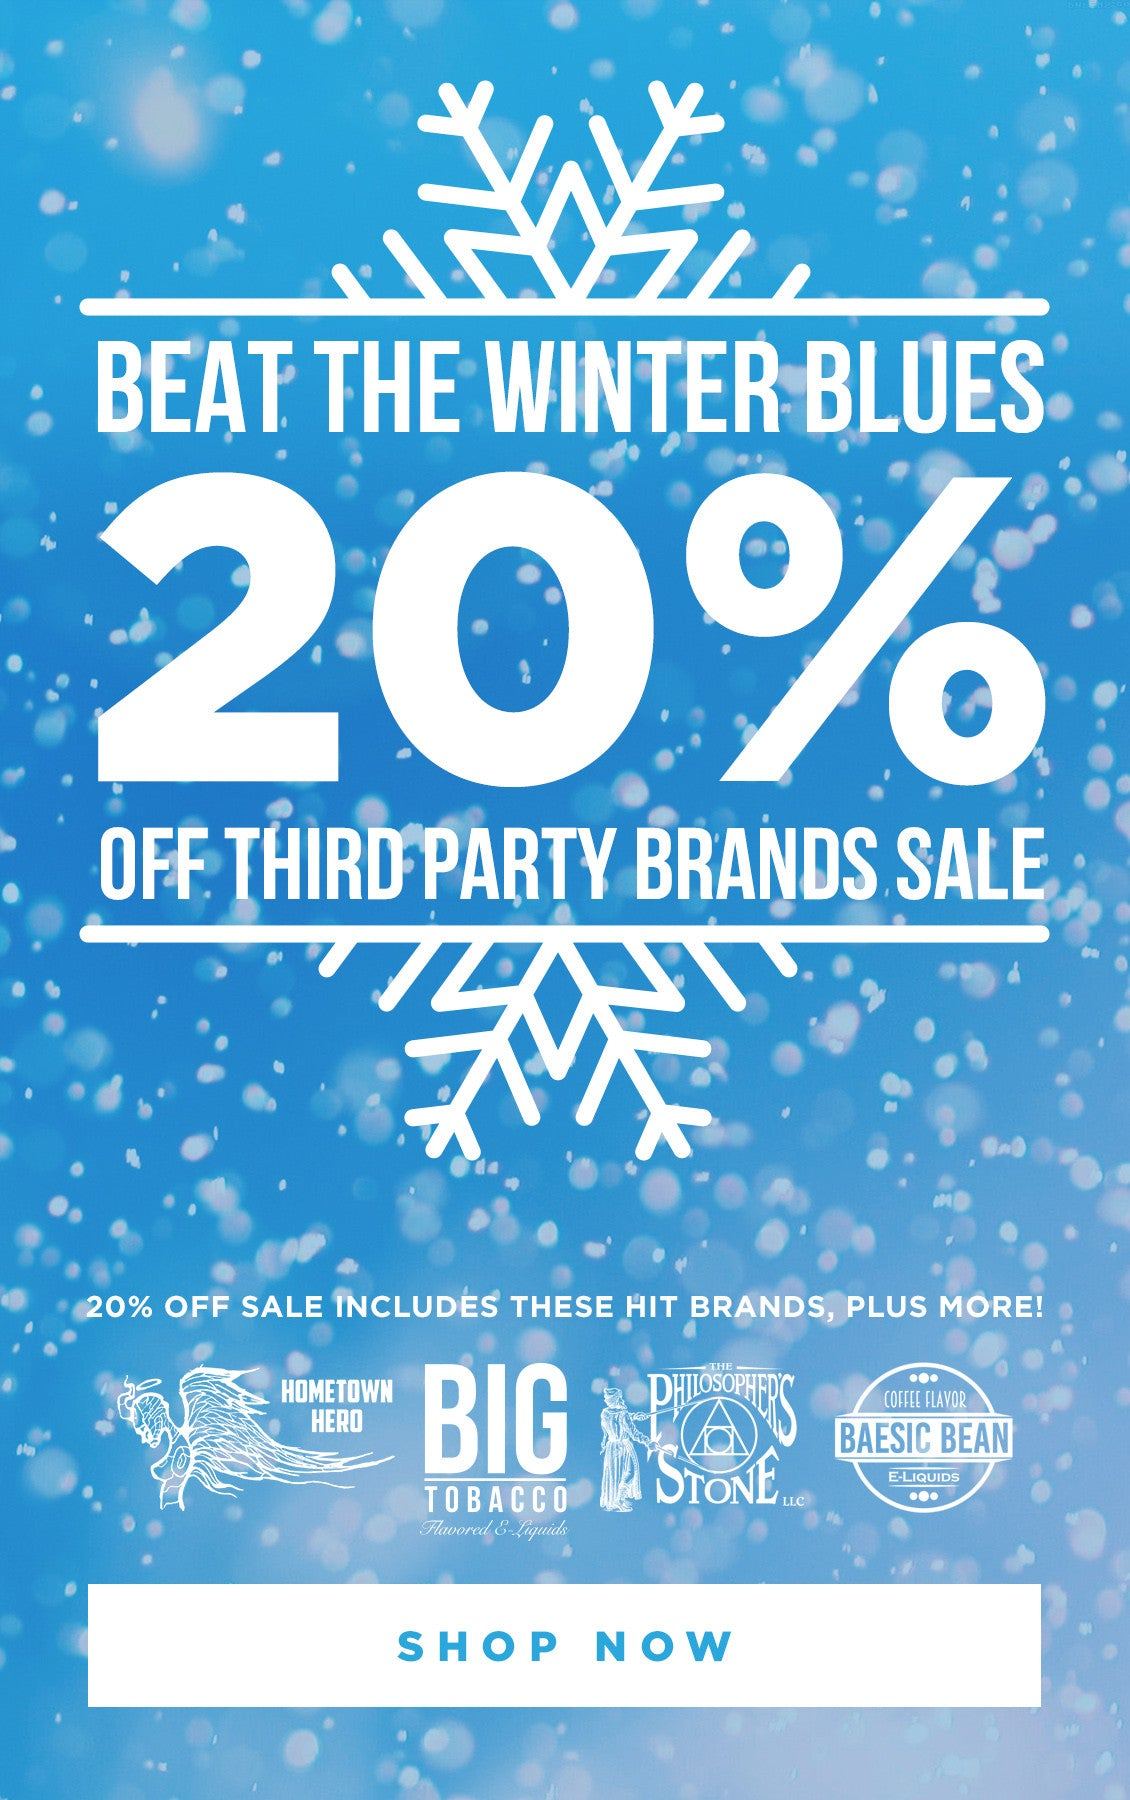 Beat the Winter Blues: 20% off all third party brands.